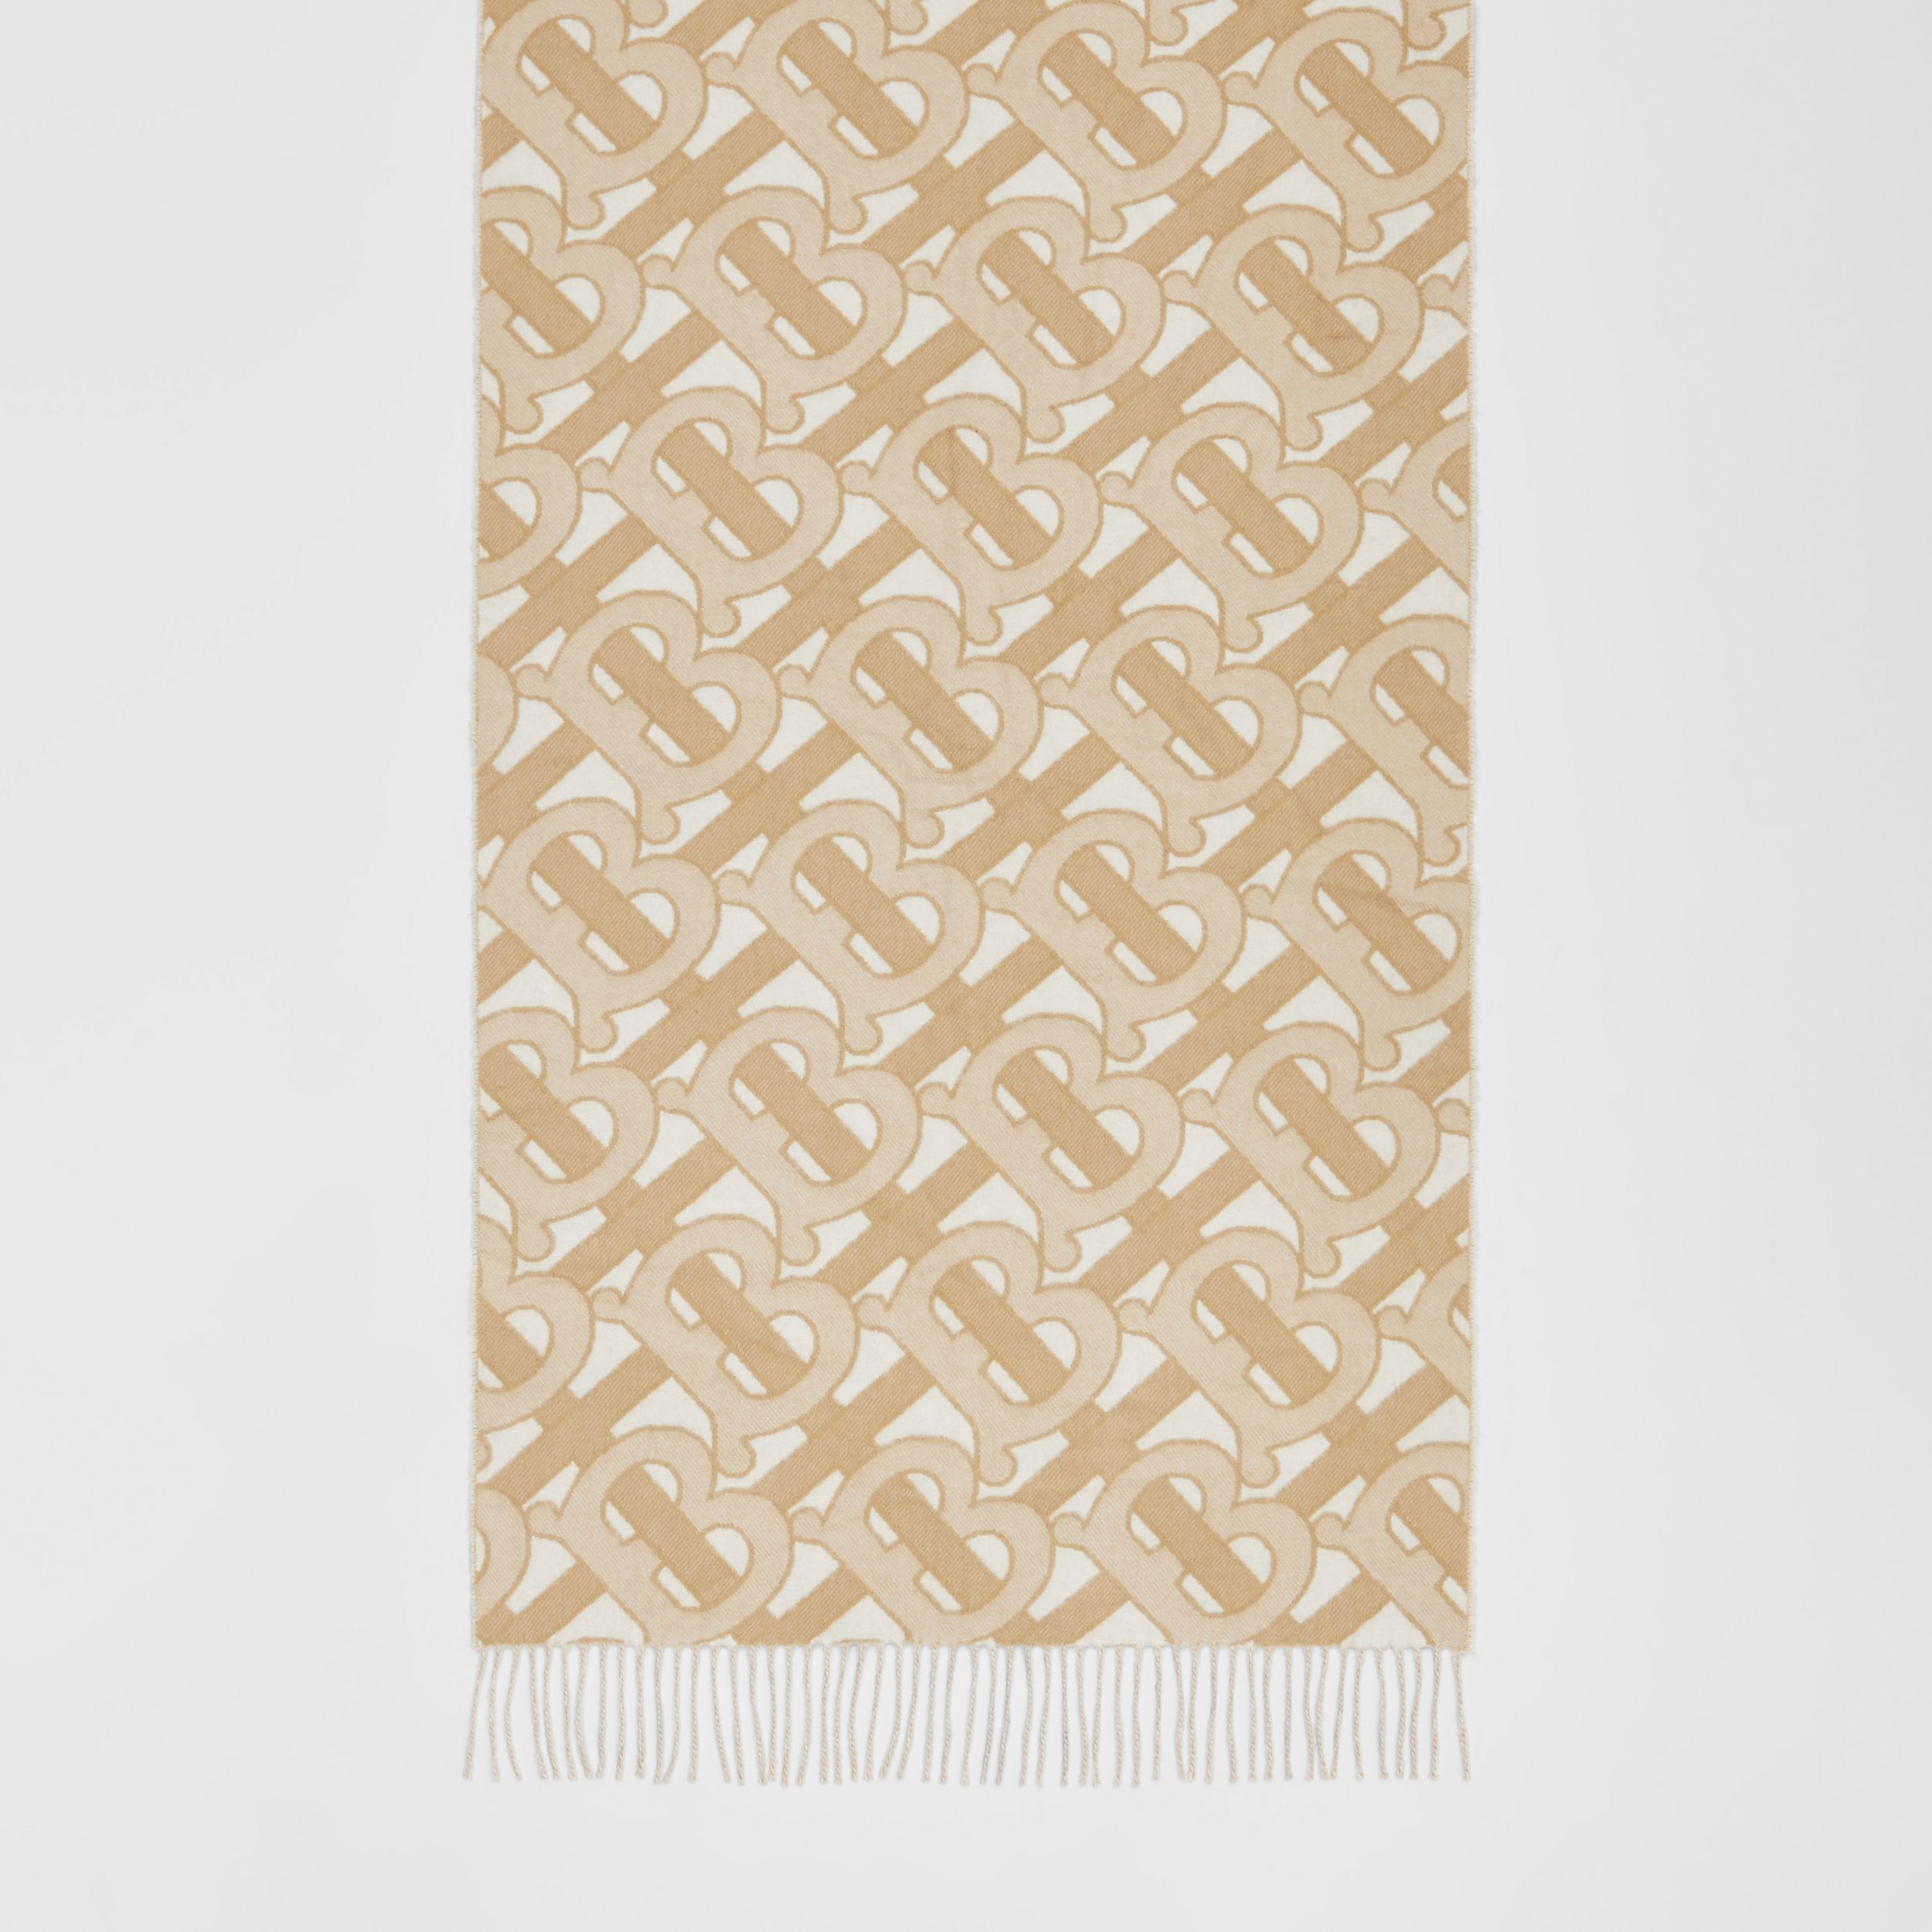 Monogram Cashmere Jacquard Scarf in Light Sand | Burberry - 4